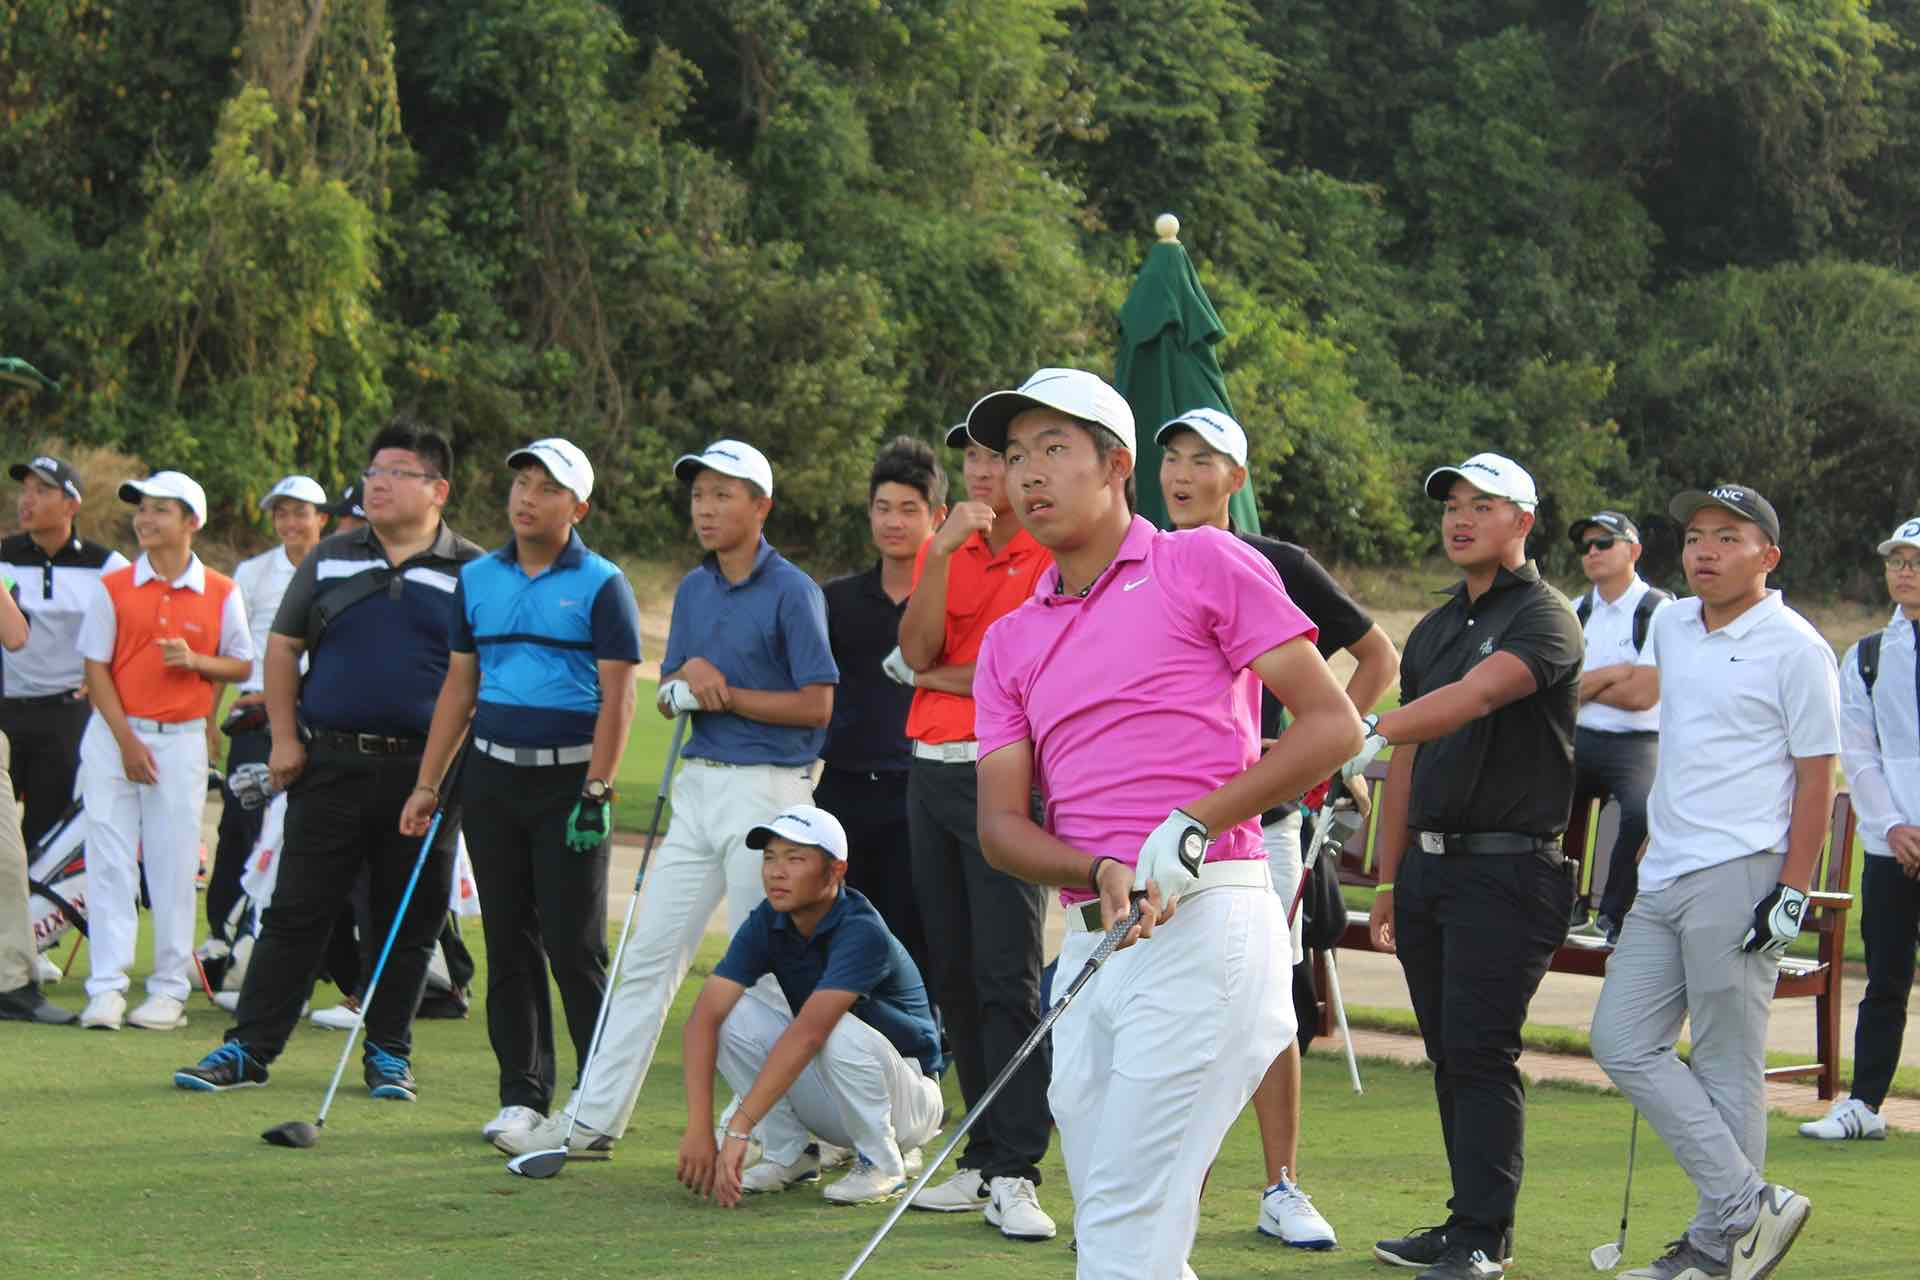 Jui-Tung Wu, First Team Junior All-Asia, swinging in the Long Drive Contest at The Bluffs